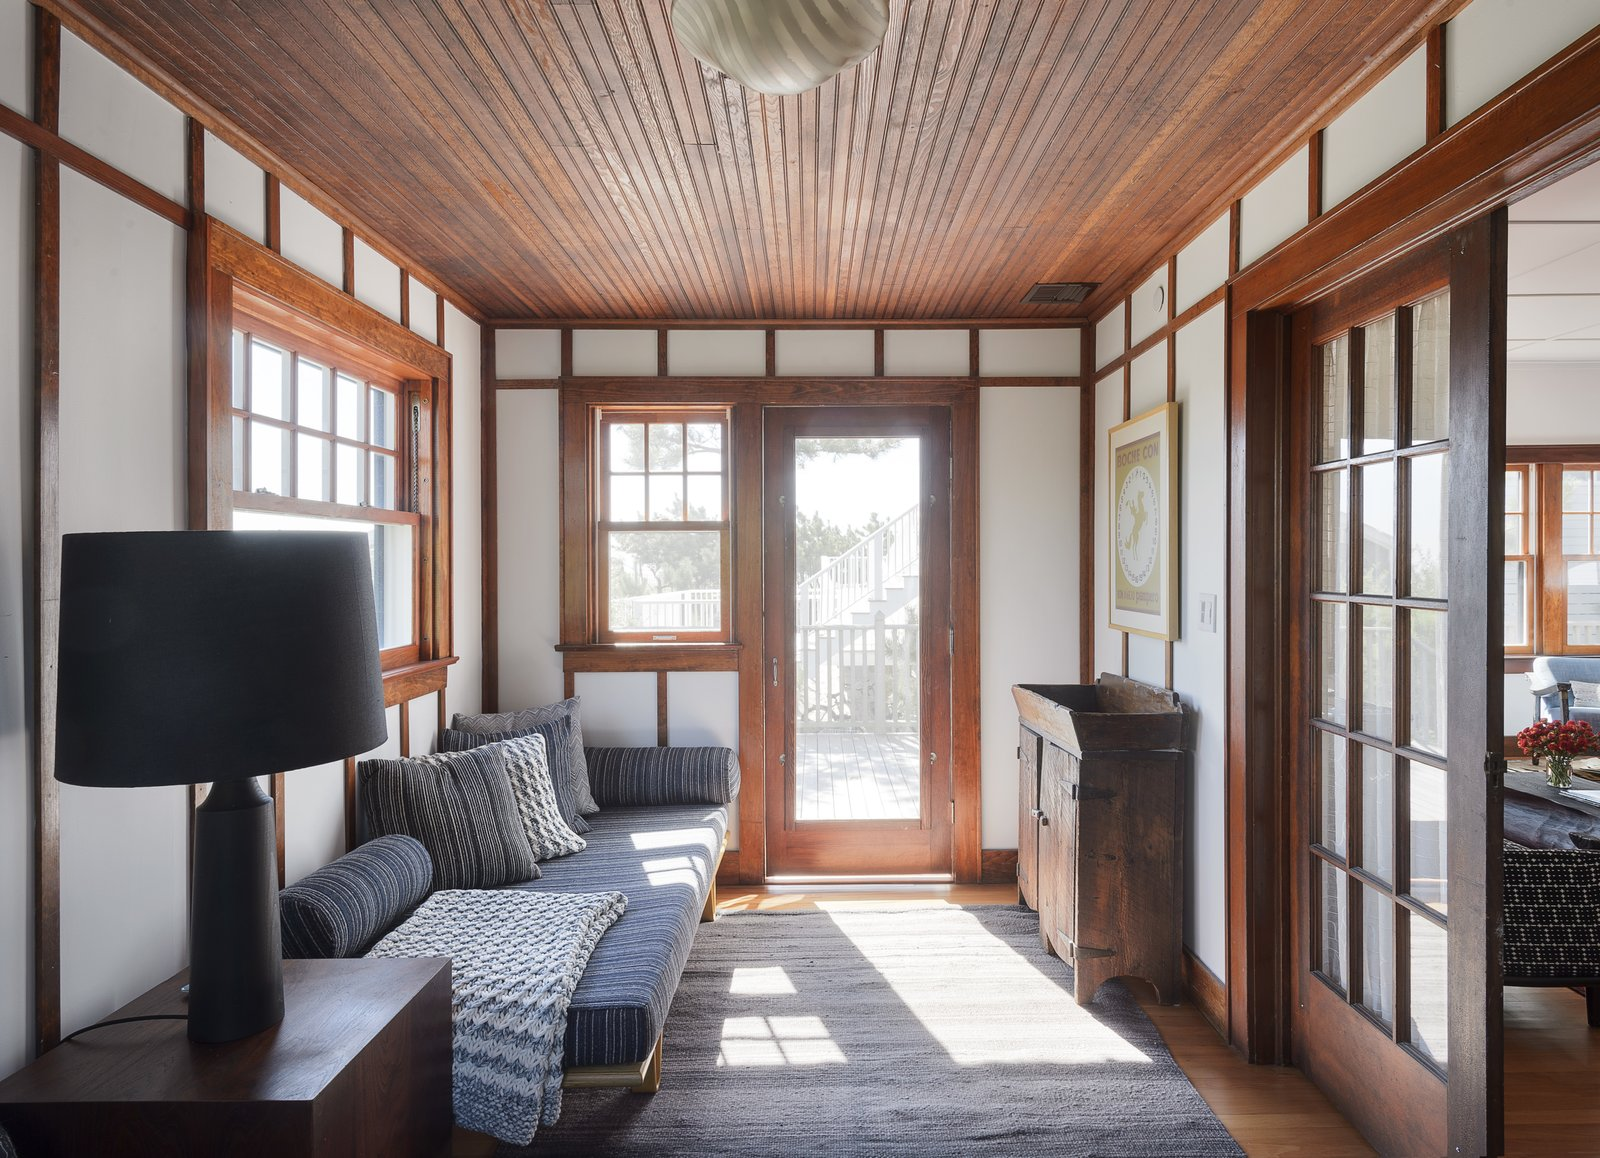 Living Room, End Tables, Rug Floor, Sofa, Table Lighting, Ceiling Lighting, Lamps, and Medium Hardwood Floor  Best Photos from This Eclectic Beach Bungalow on Fire Island Was Saved After Sandy